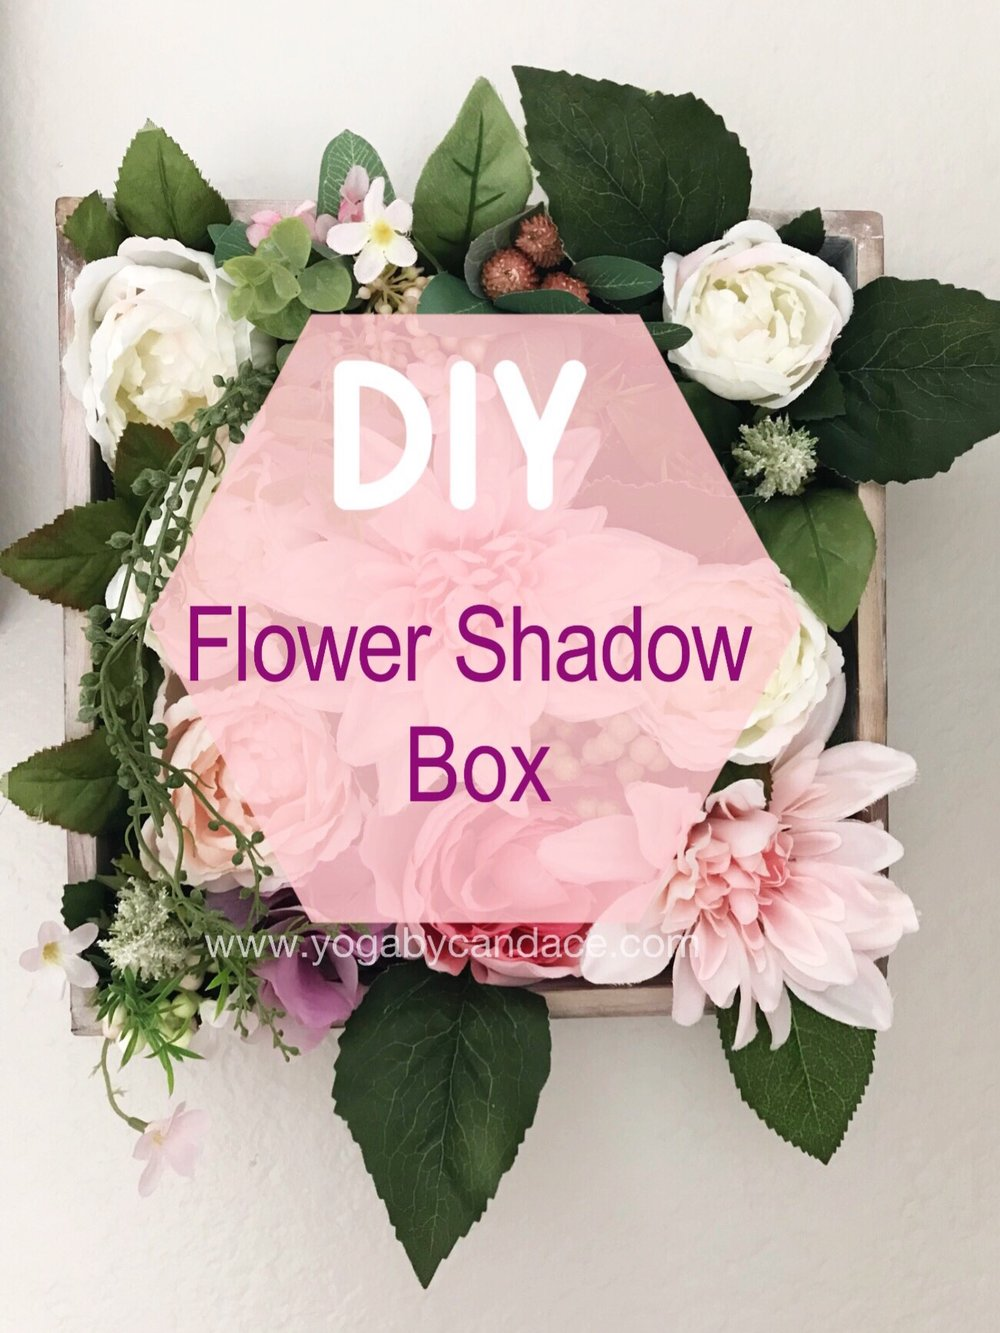 DIY Flower Shadow Box Cover Image.jpeg